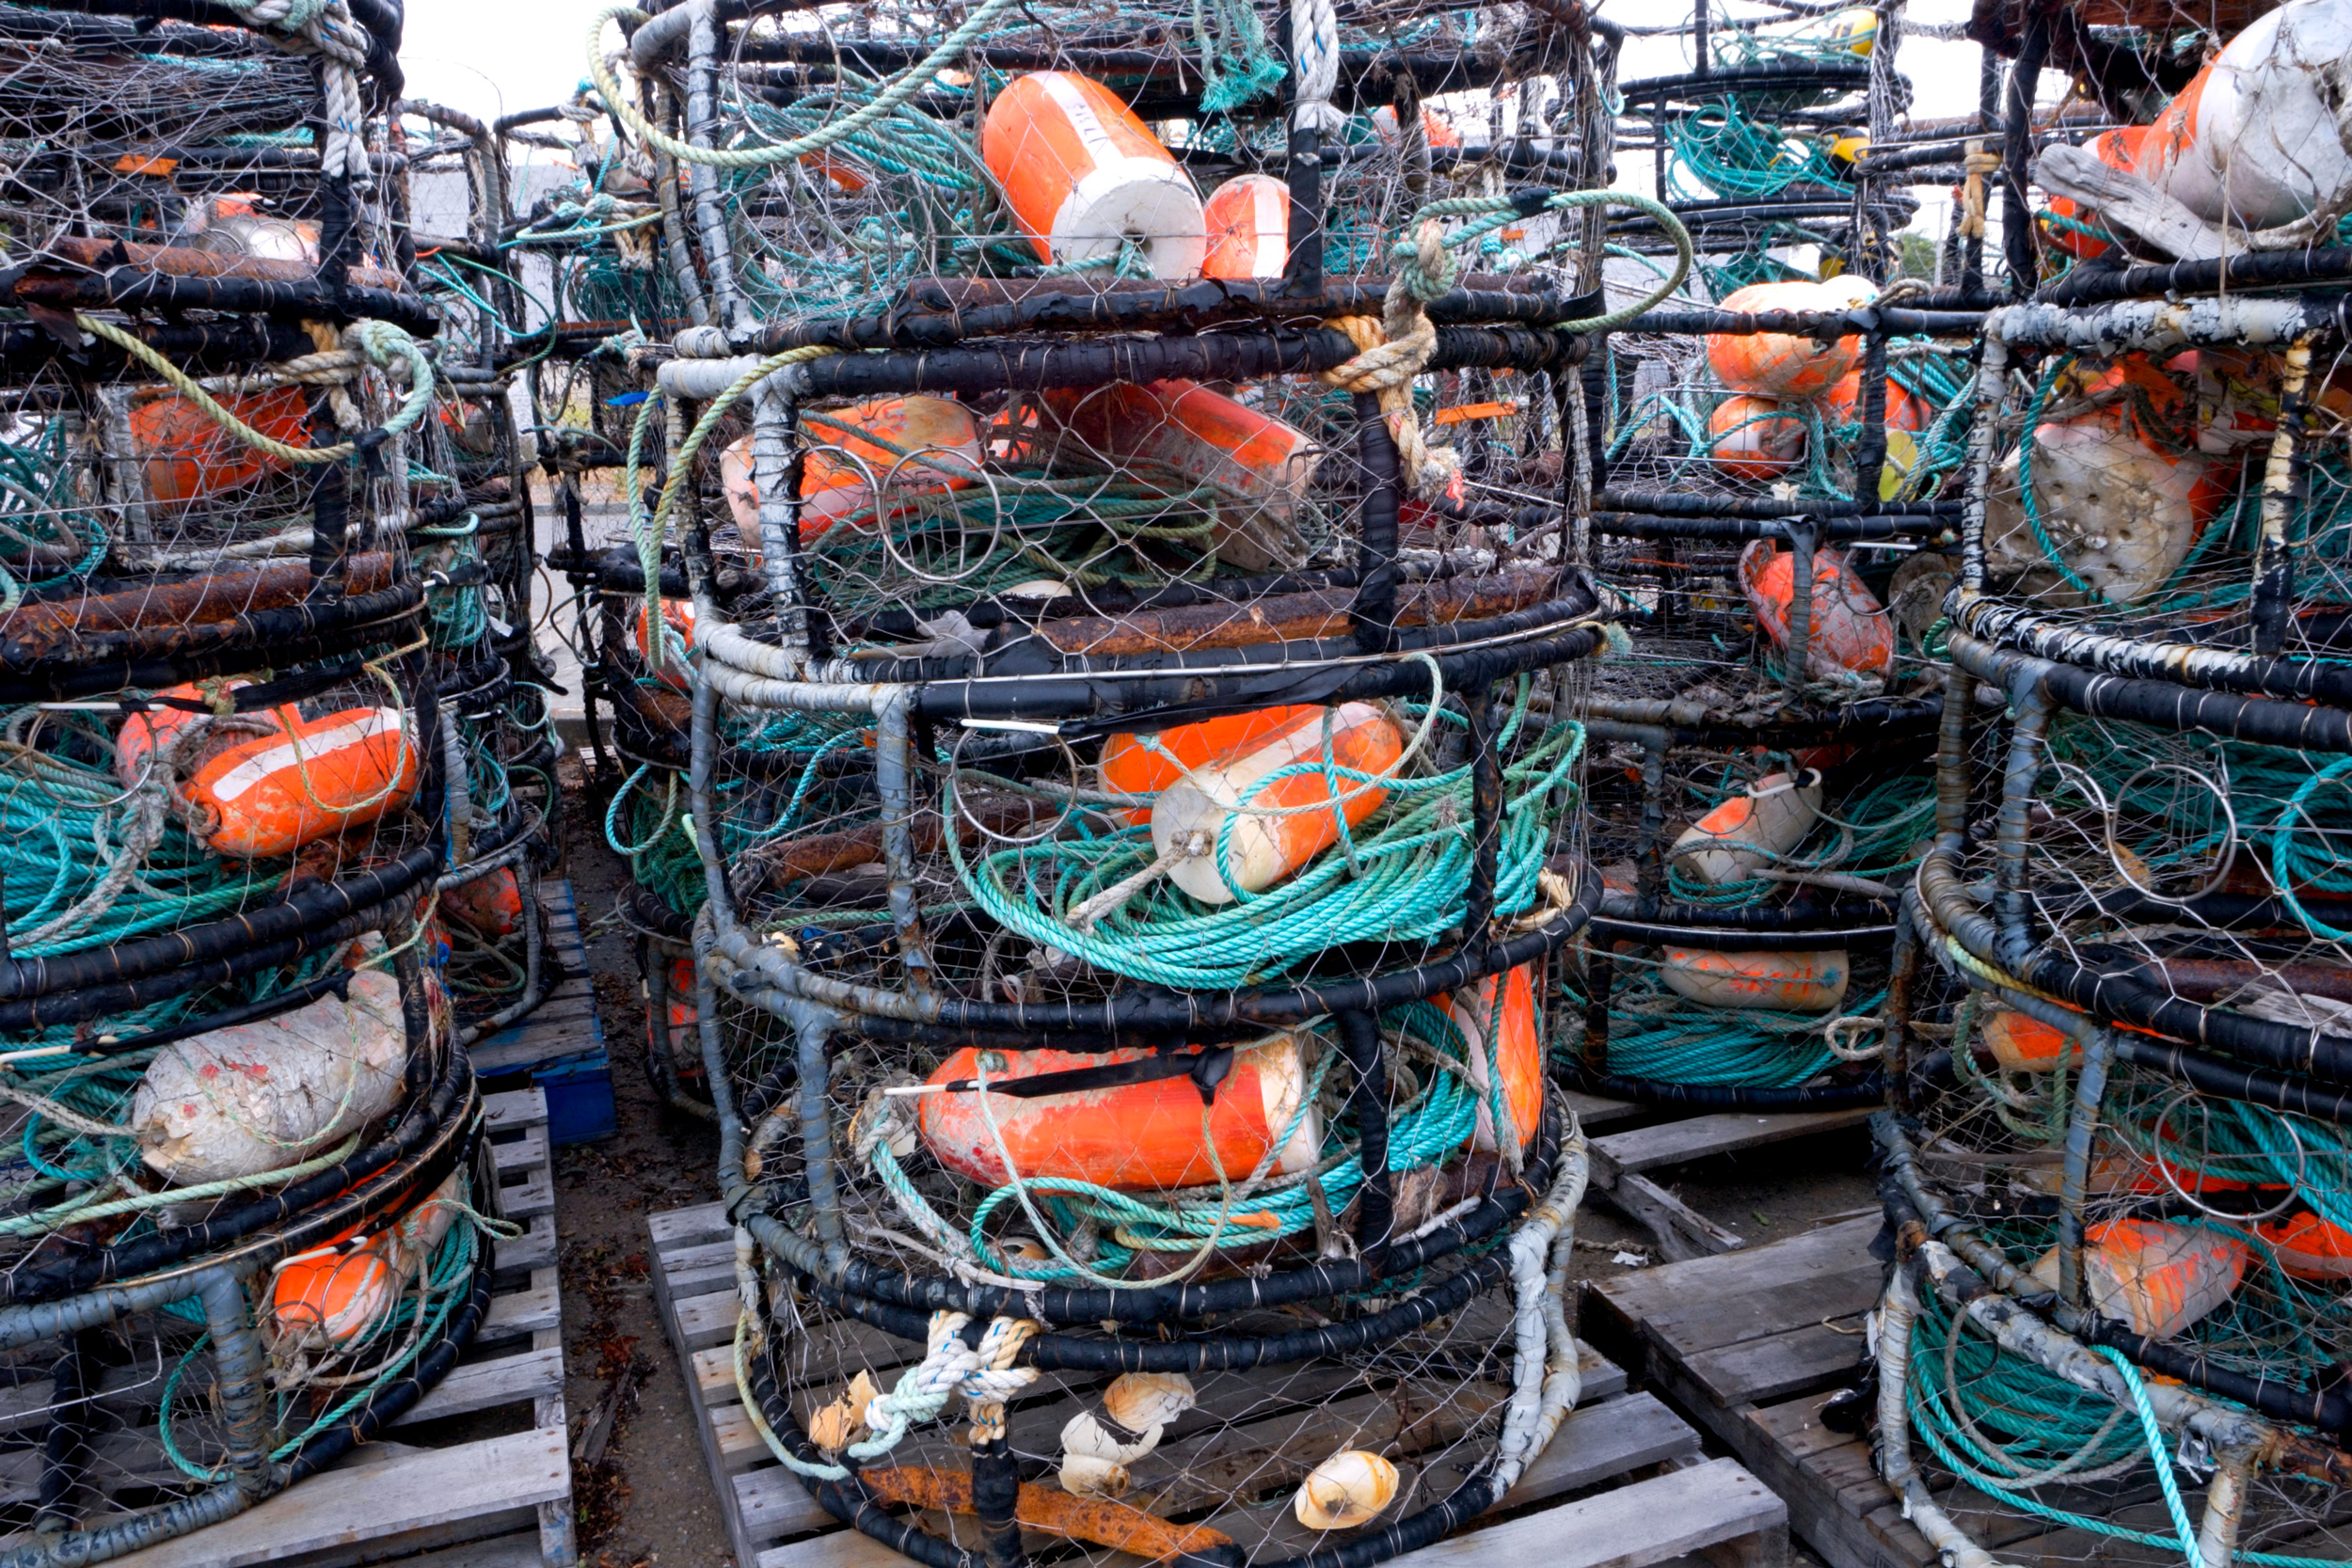 To Save the Whales, Crab Fishers Are Testing Ropeless Gear